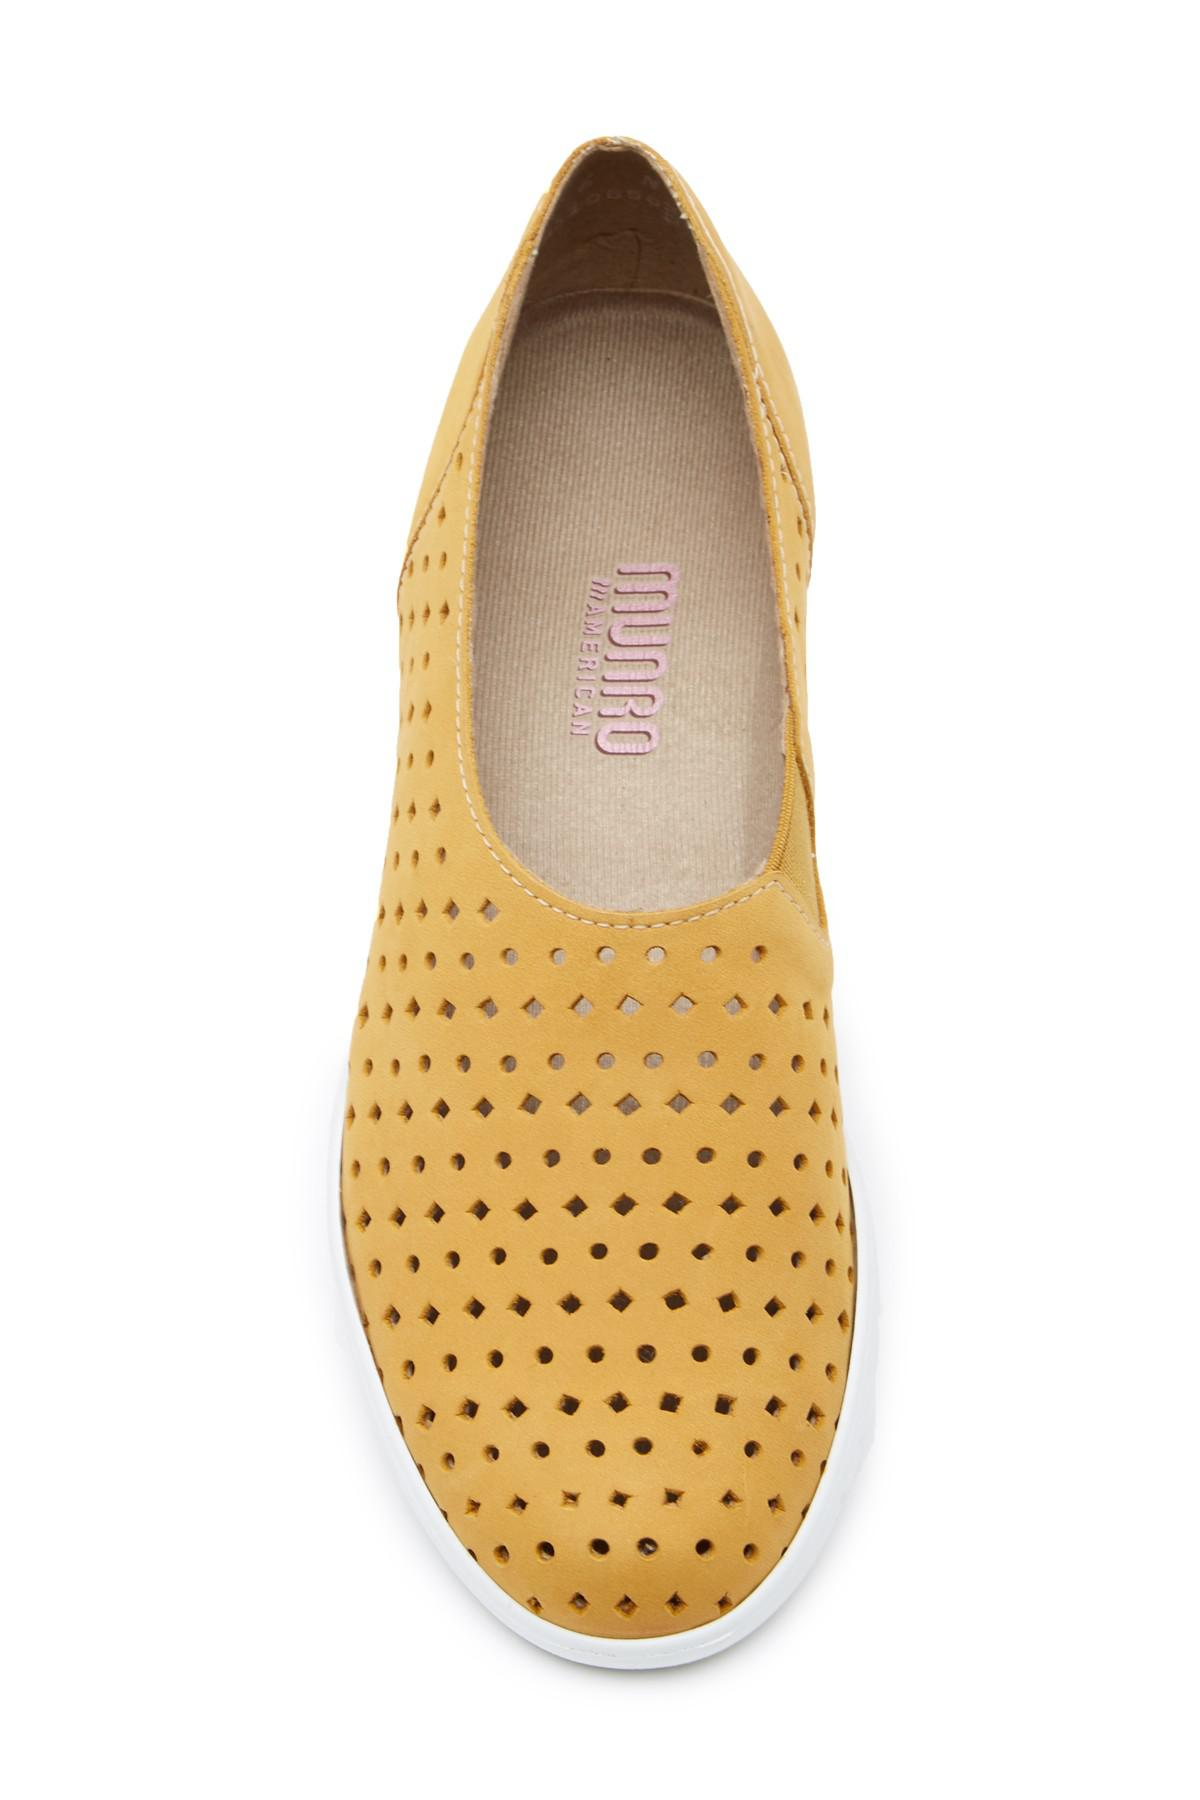 Munro Skipper Perforated Leather